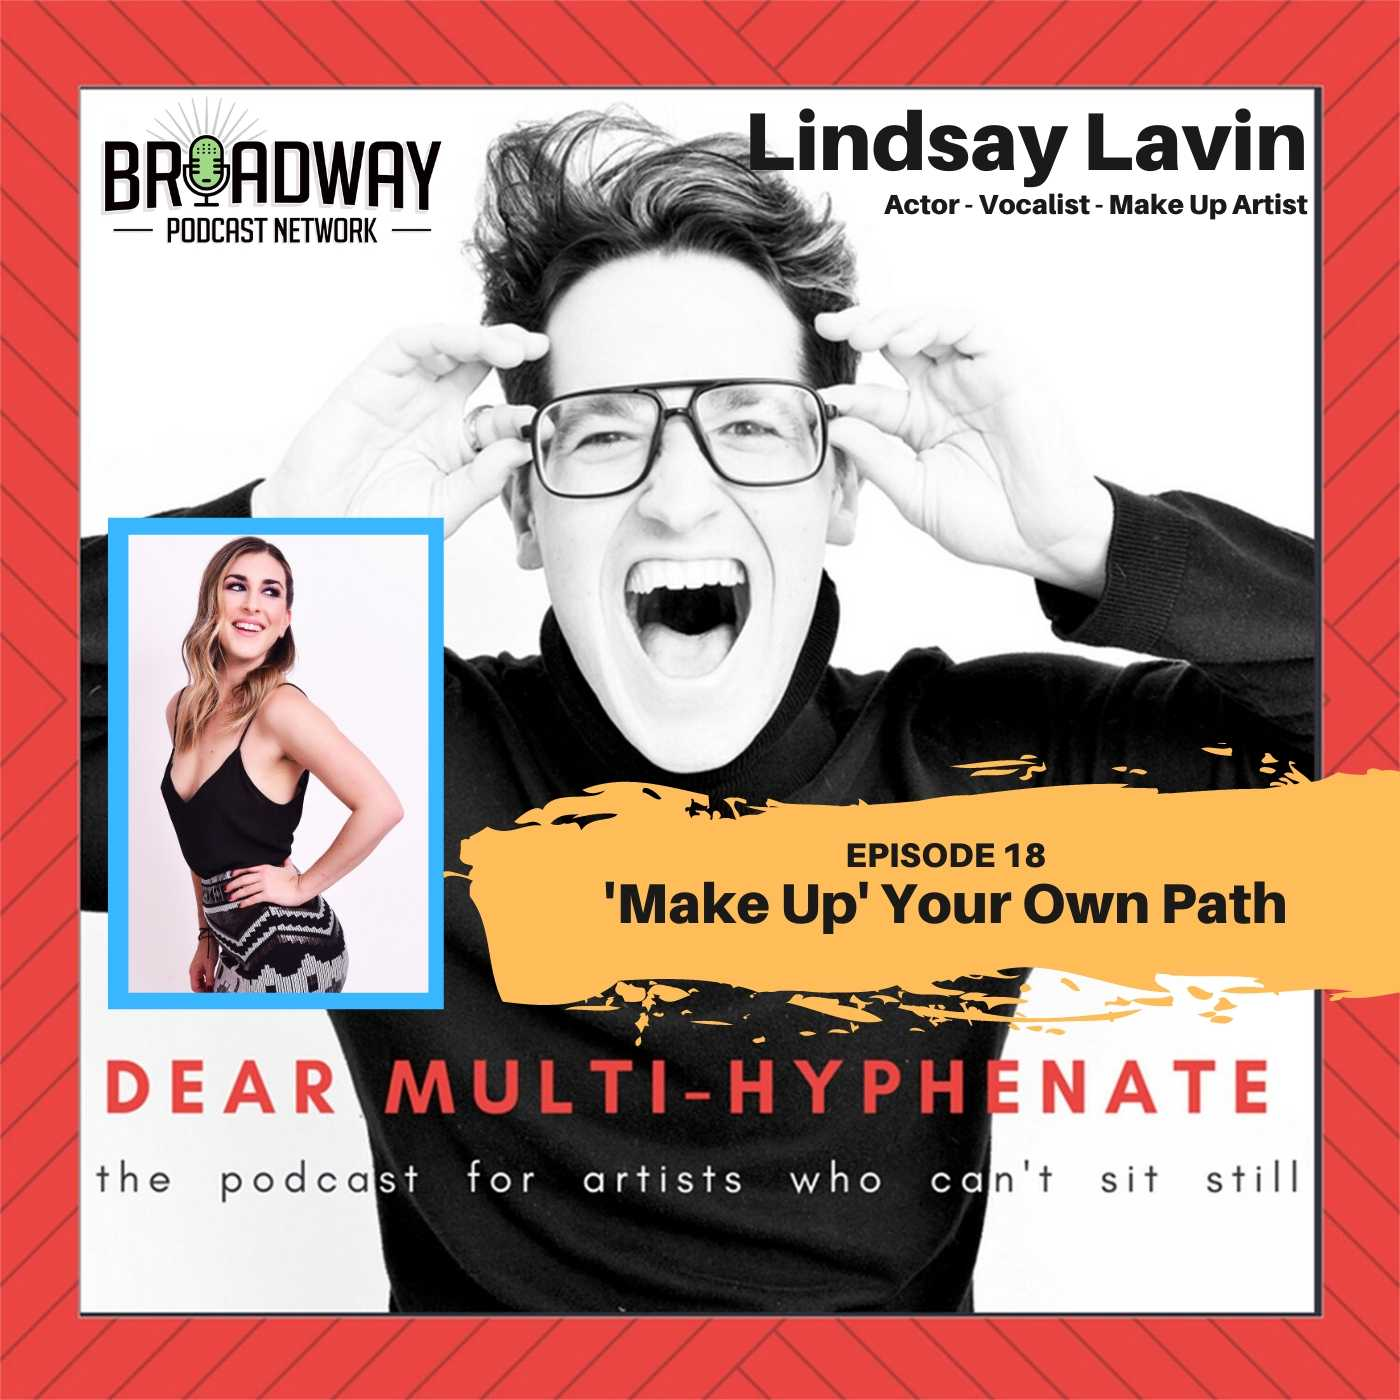 Dear Multi-hyphenate #18 - Lindsay Lavin: Make Up' Your Own Path